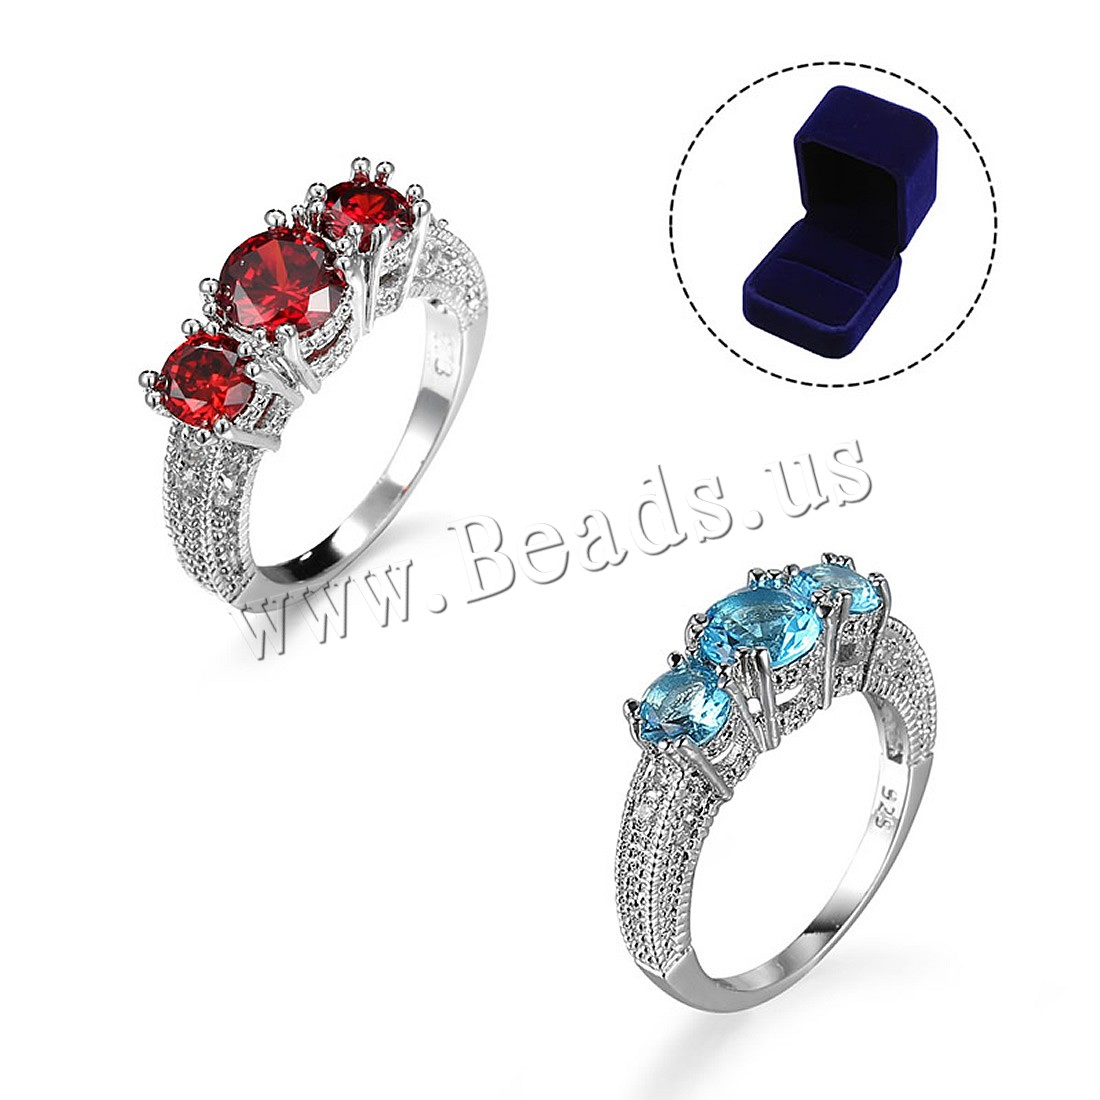 Buy Unisex Finger Ring Brass Velvet box & Cubic Zirconia platinum plated 925 logo & different size choice colors choice nickel lead & cadmium free 46.5-19.5mm 52x60x48mm Sold PC